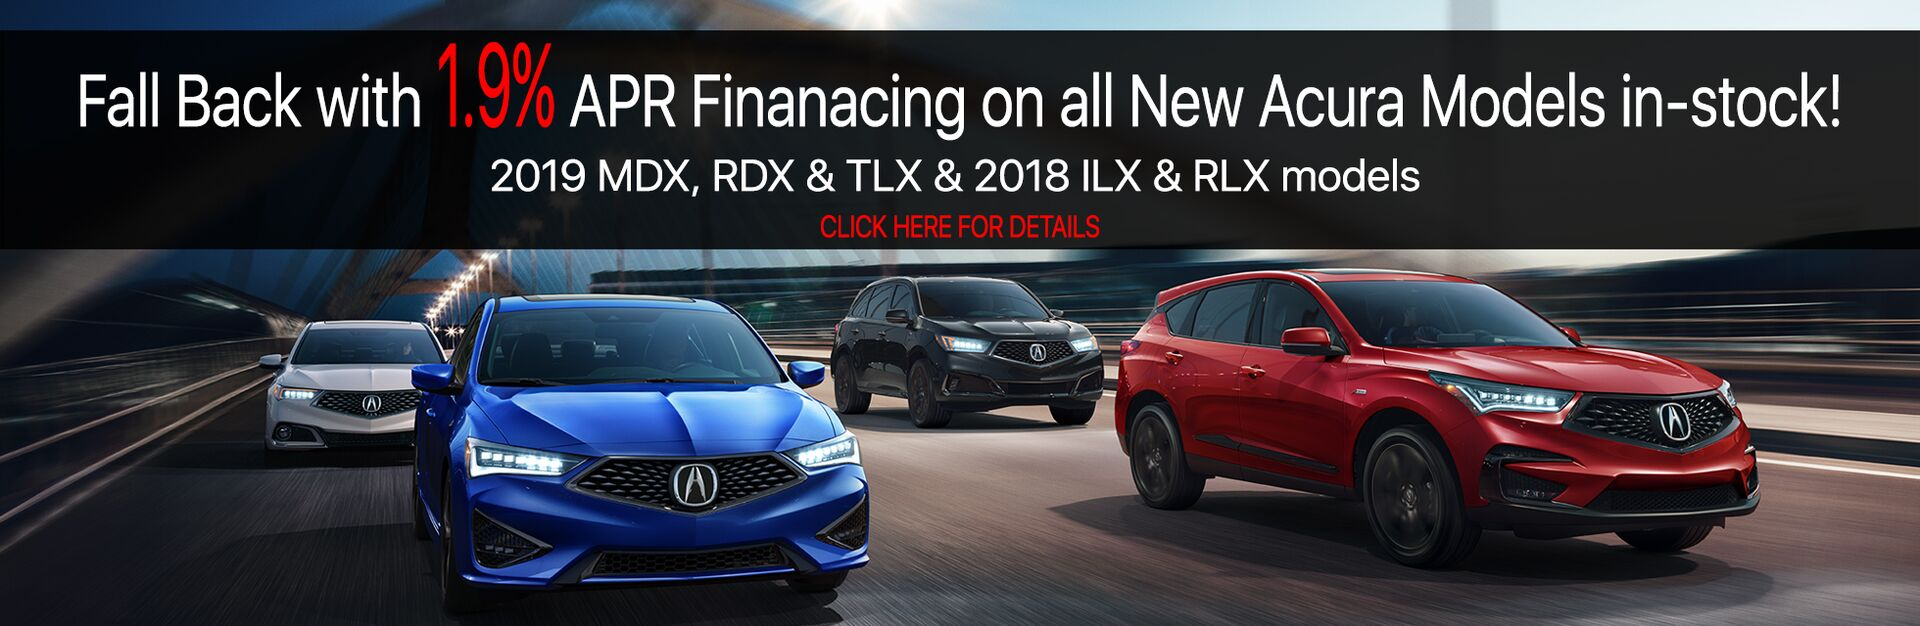 Acura Special APR Financing